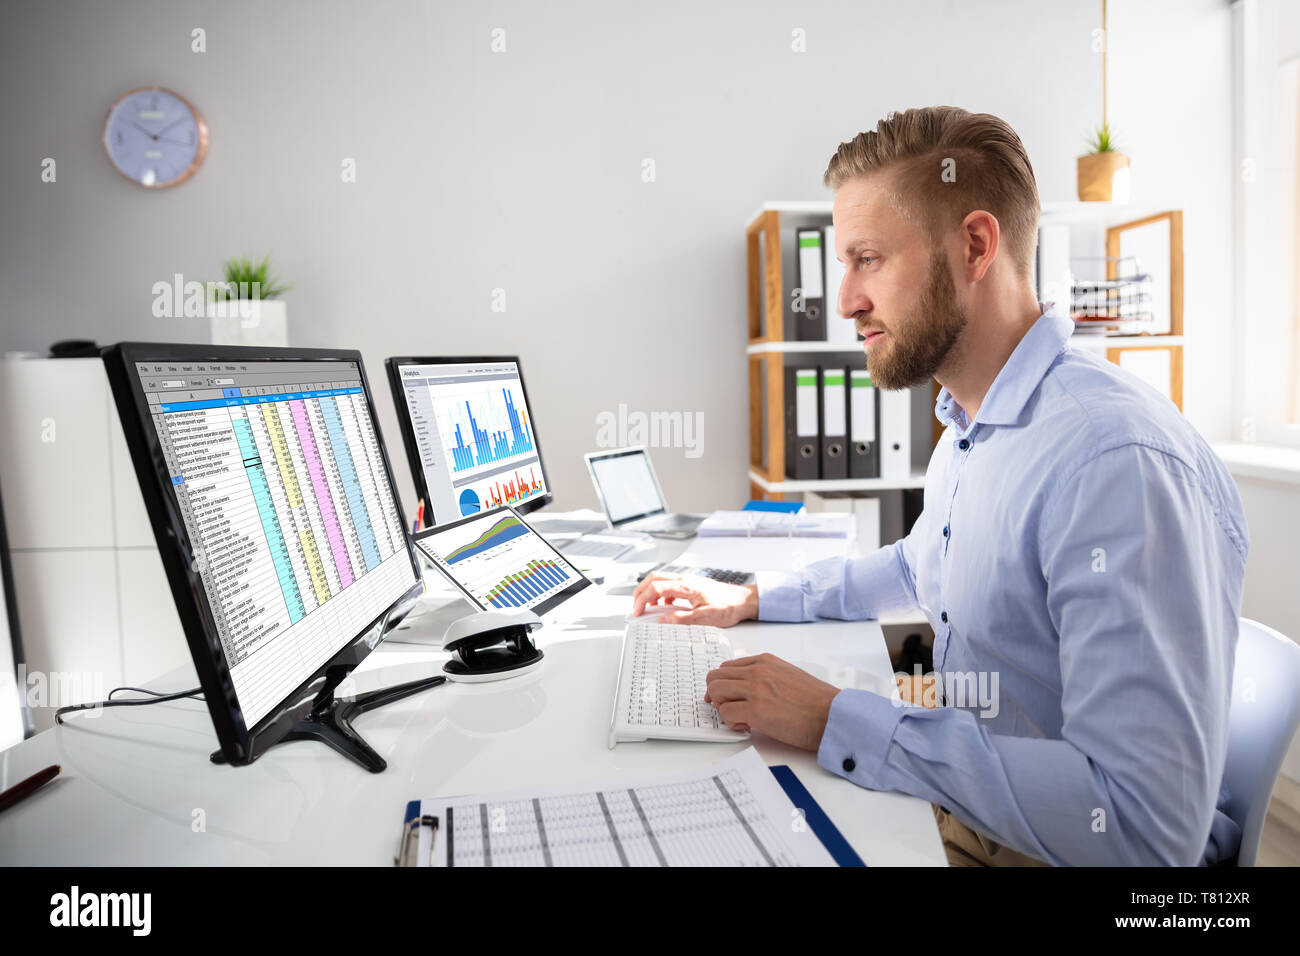 Businessperson Calculating E-Invoice Online On Computer At Office - Stock Image